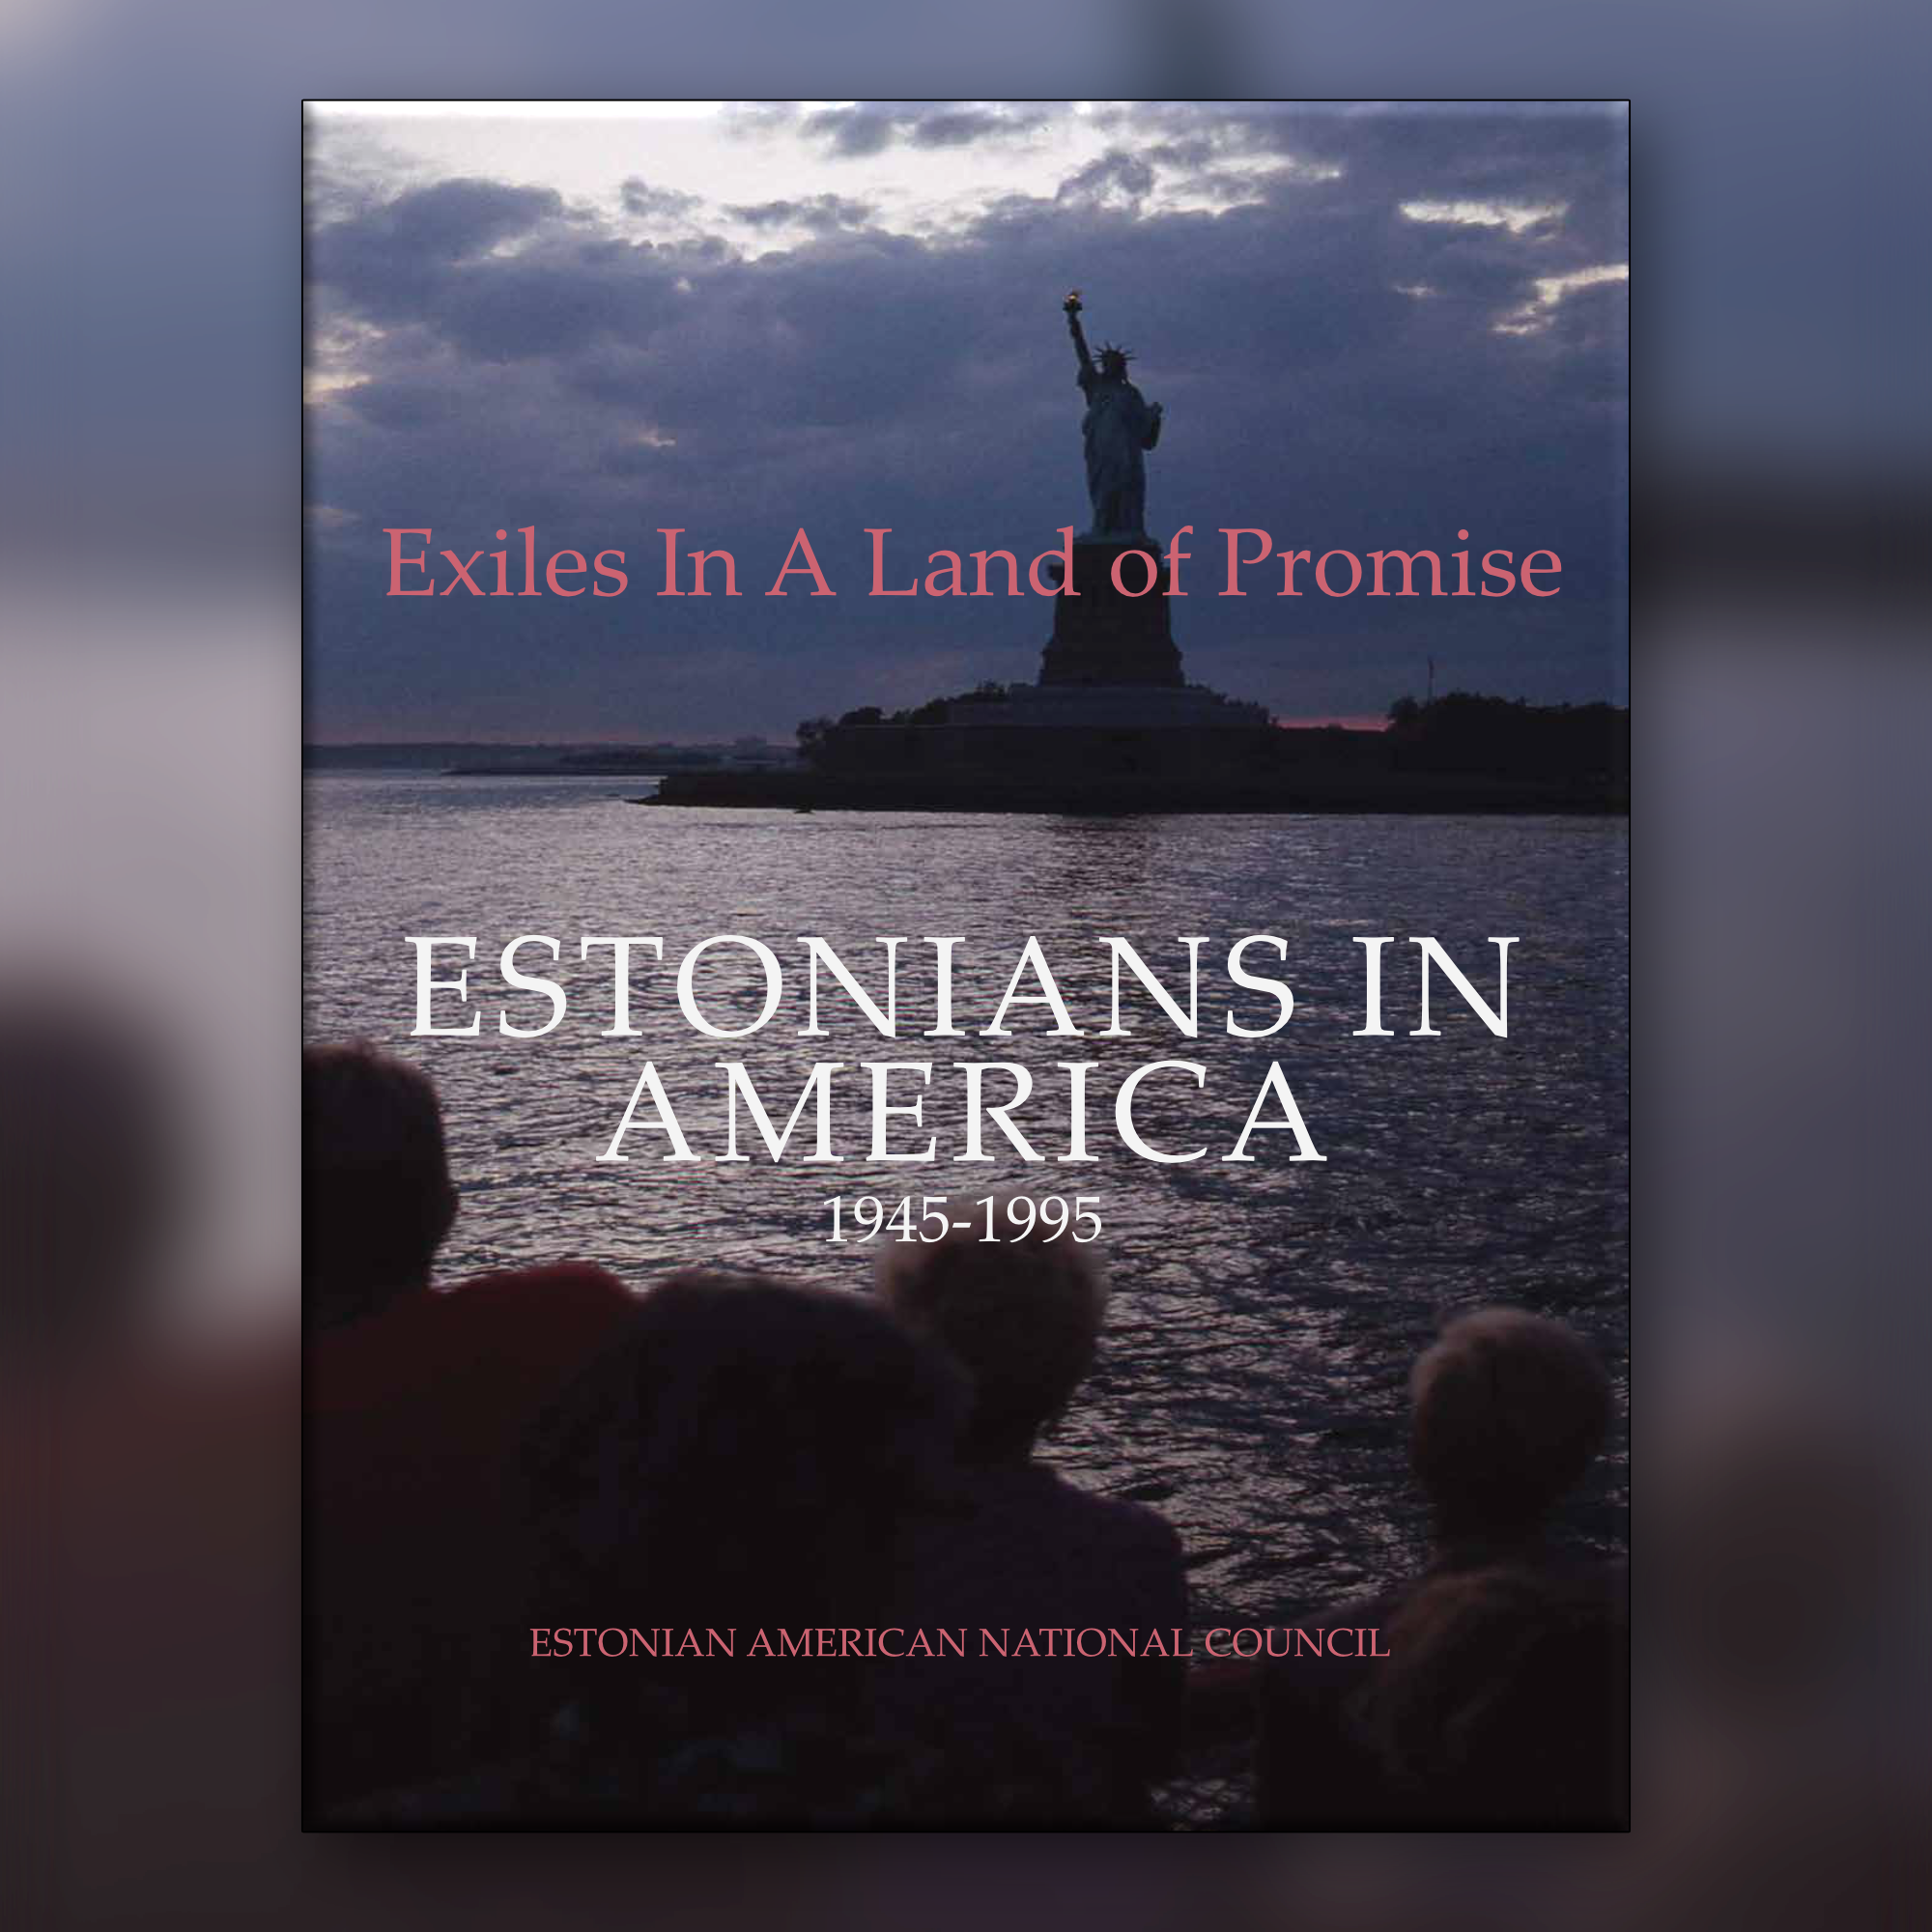 """Book """"Estonians in America 1945-1995, Exiles In A Land of Promise"""" cover"""